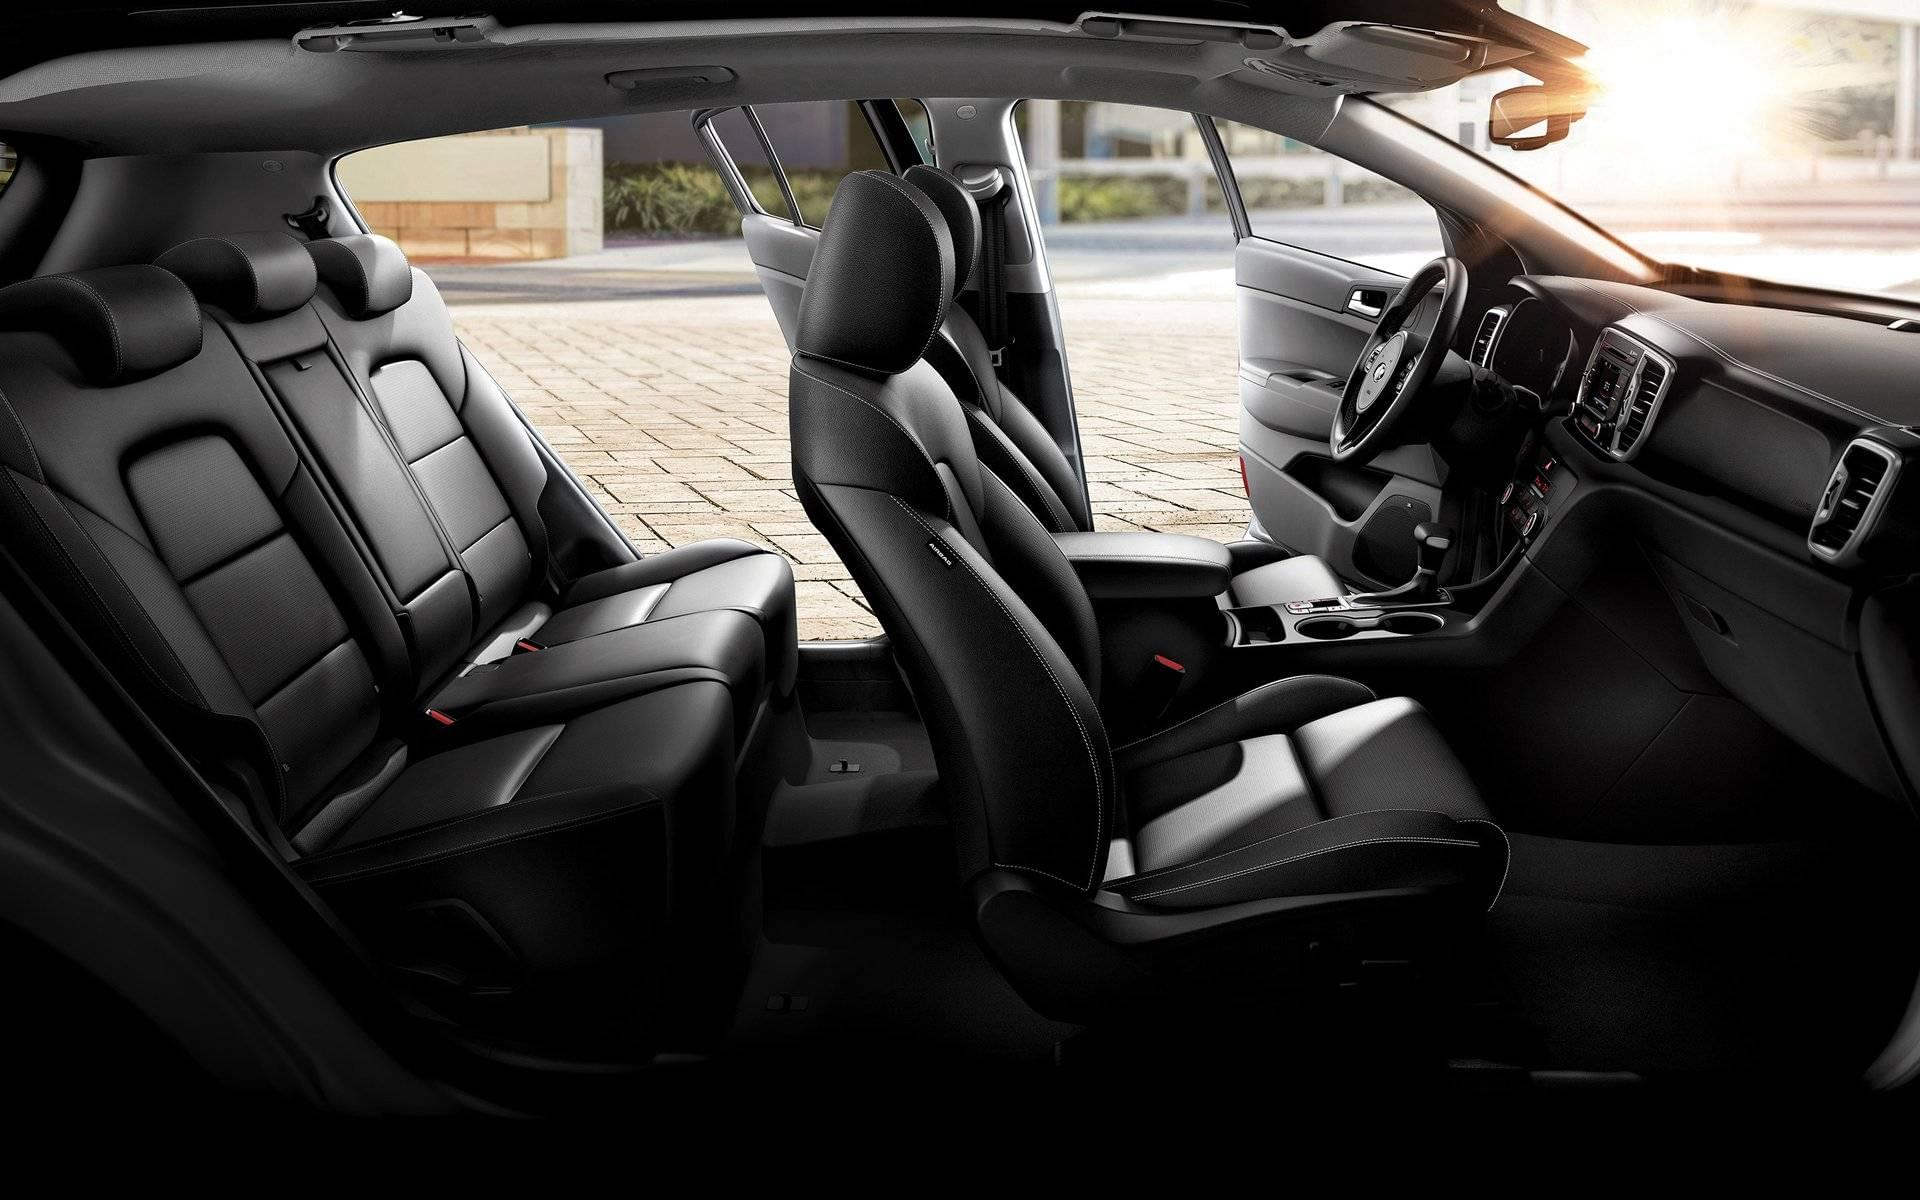 Background Sportage 2017 Interior Overview-kia-1920x-jpg